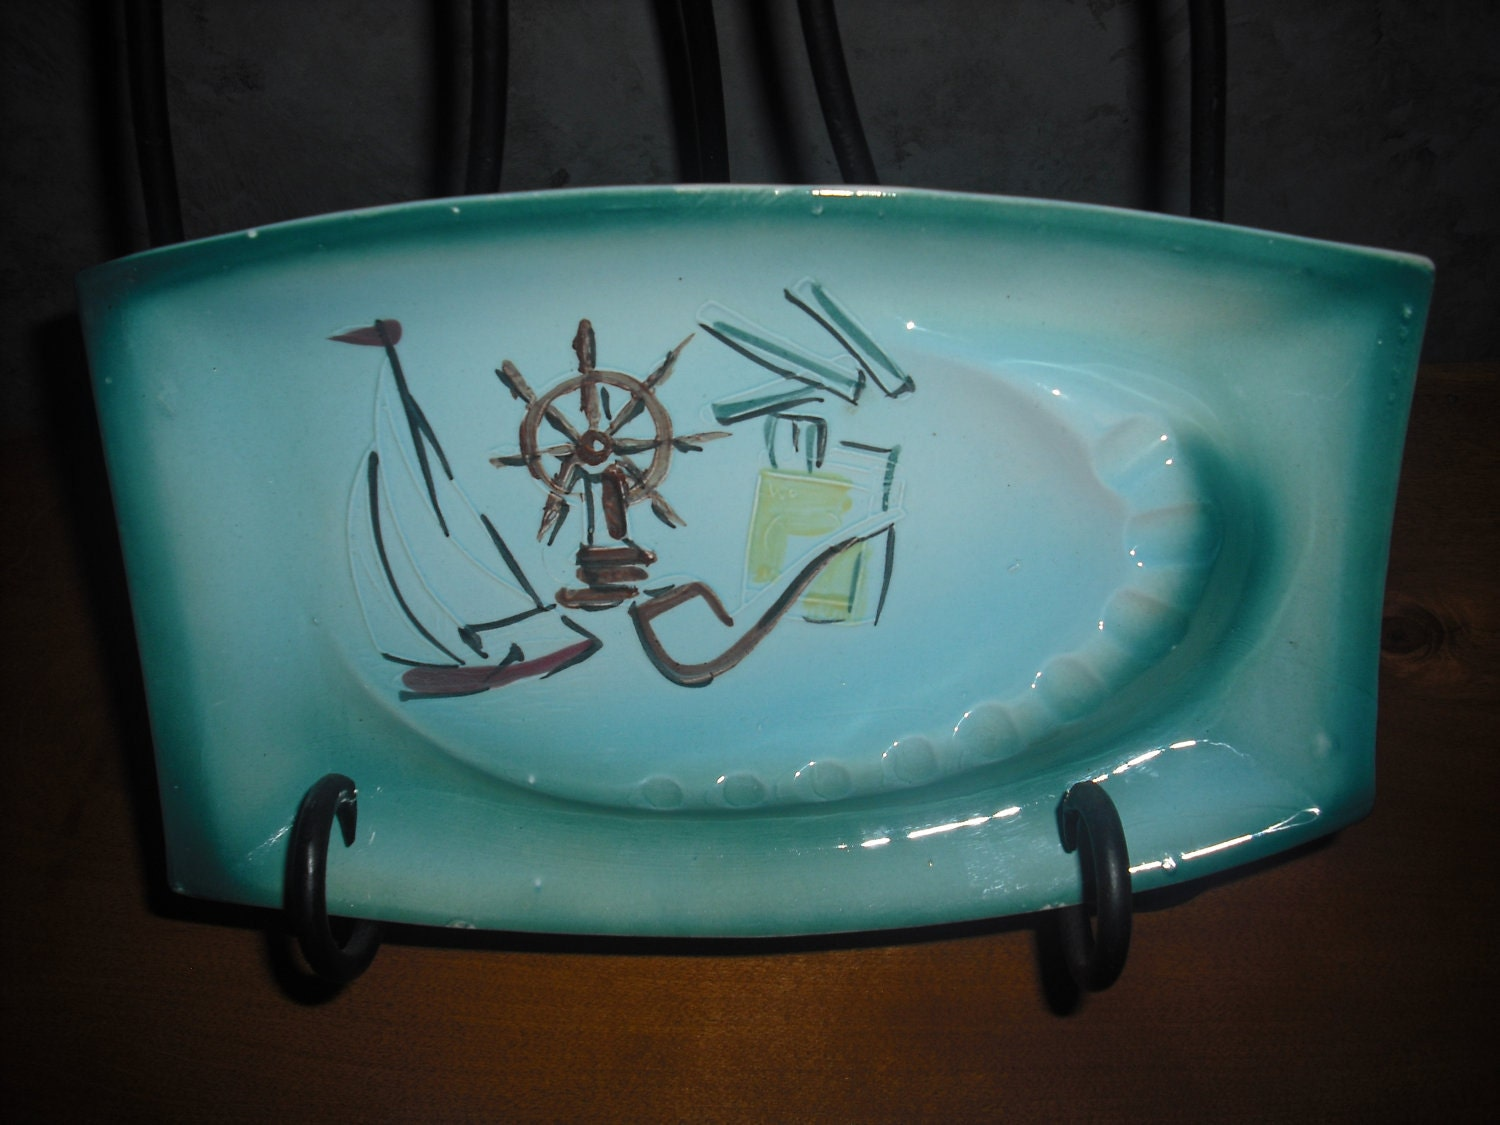 Vintage -Handmade-Retro- Top Table Ship-Ceramic- Ashtray